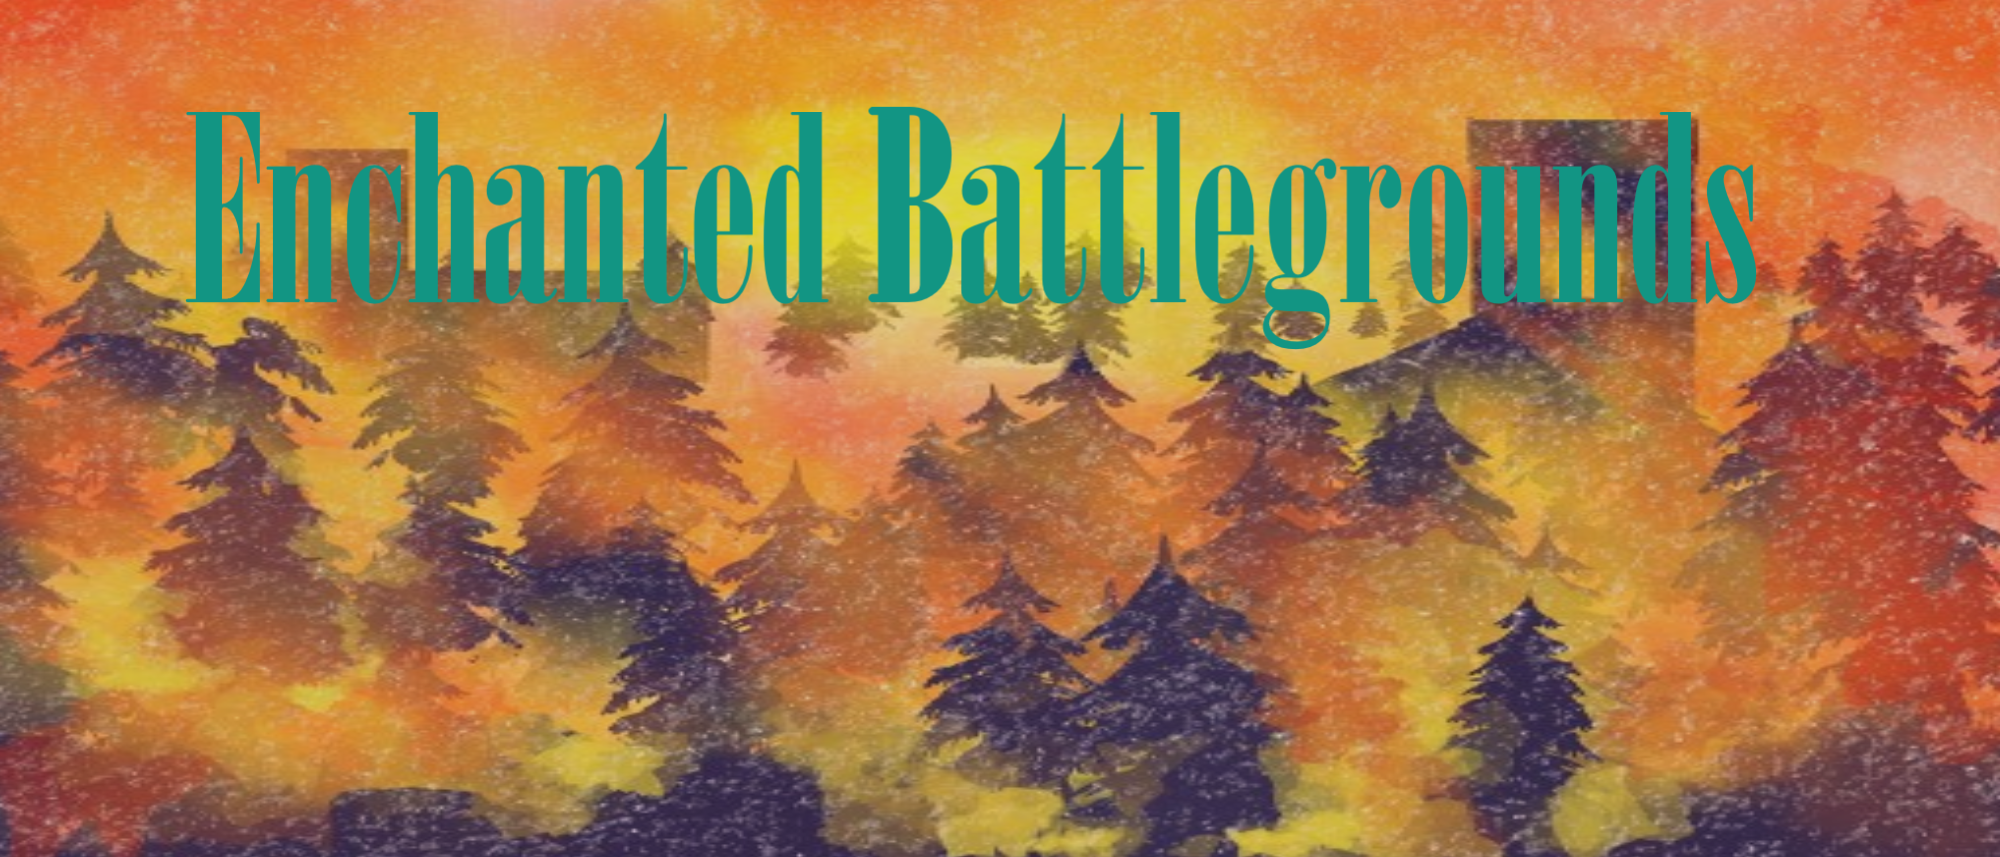 Enchanted Battlegrounds